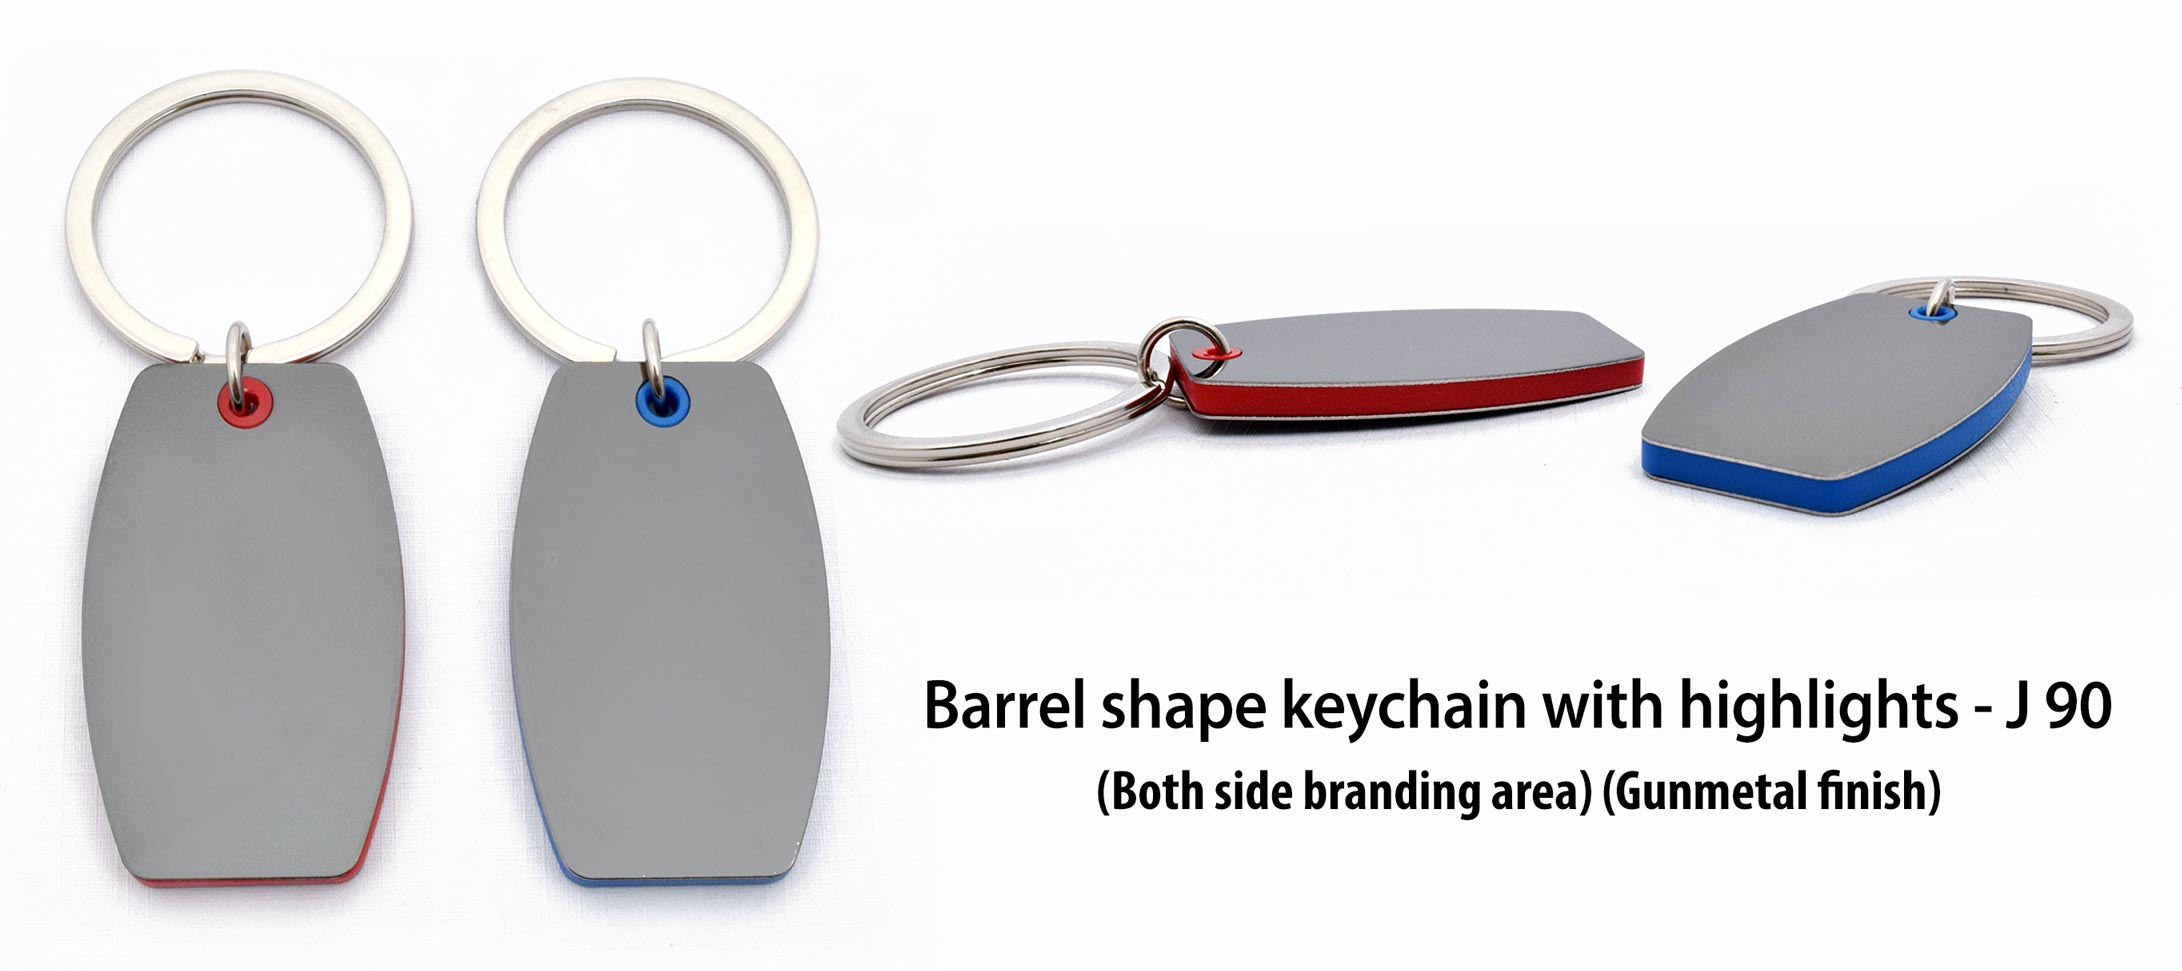 J90 - Barrel shape keychain with highlights